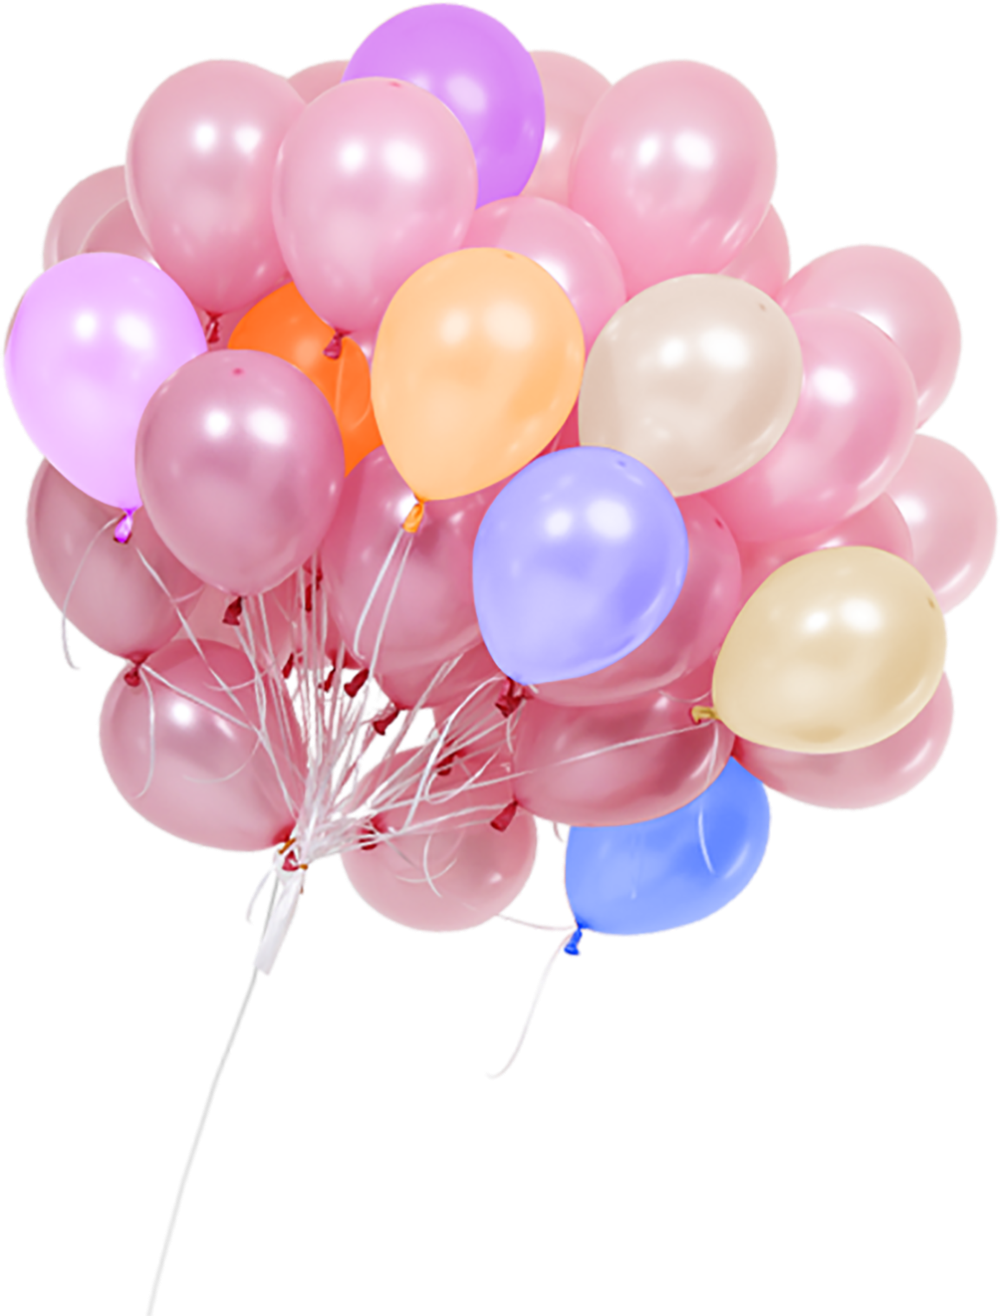 Real Balloon Png Free Real Balloon Png Transparent Images Balloons Heart Balloons Clip Art